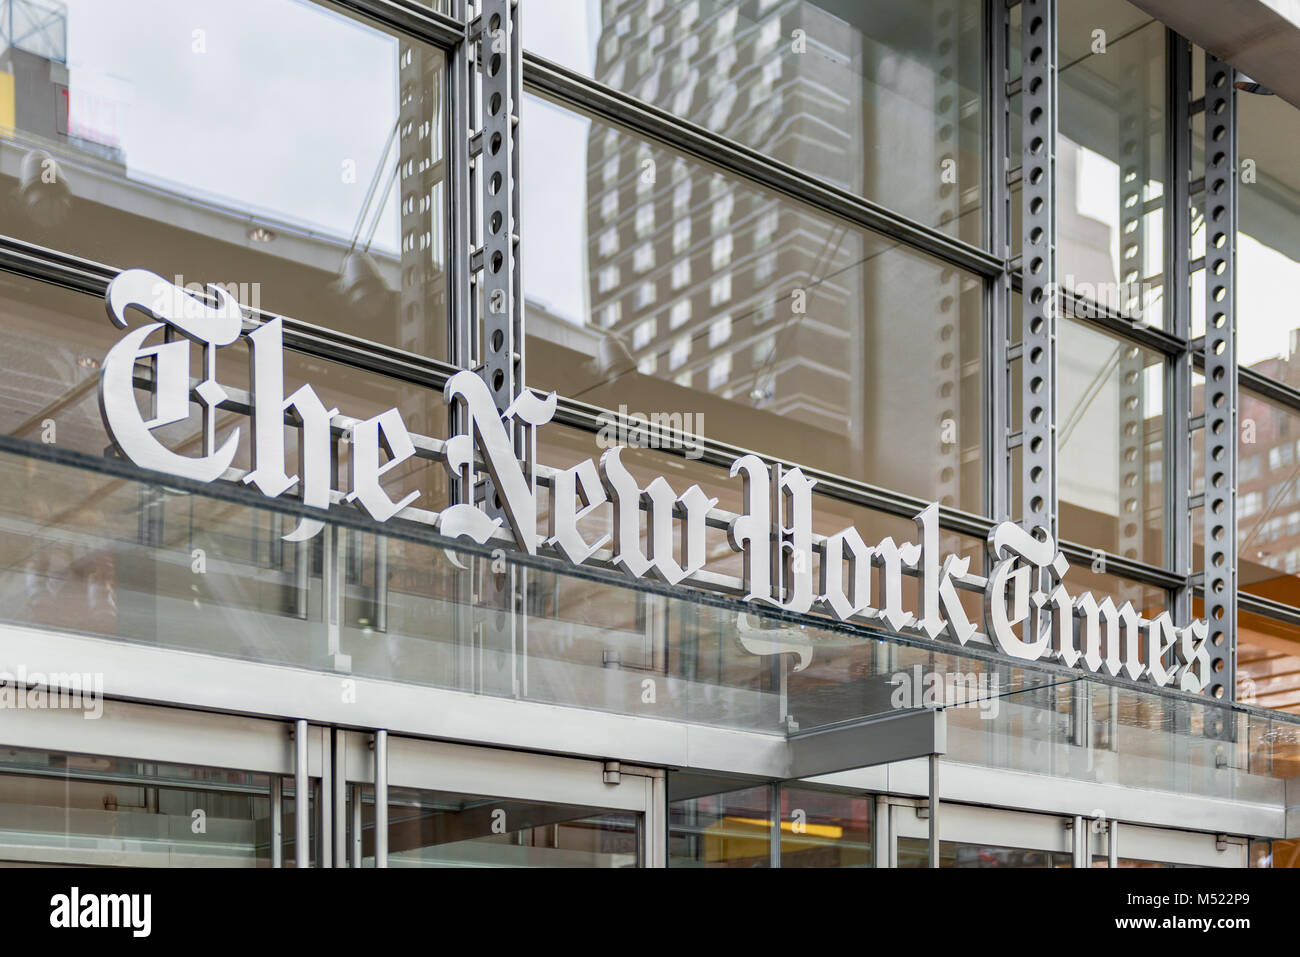 New York Times Headquarters in Manhattan, New York City, USA. The New York Times is an American newspaper based - Stock Image